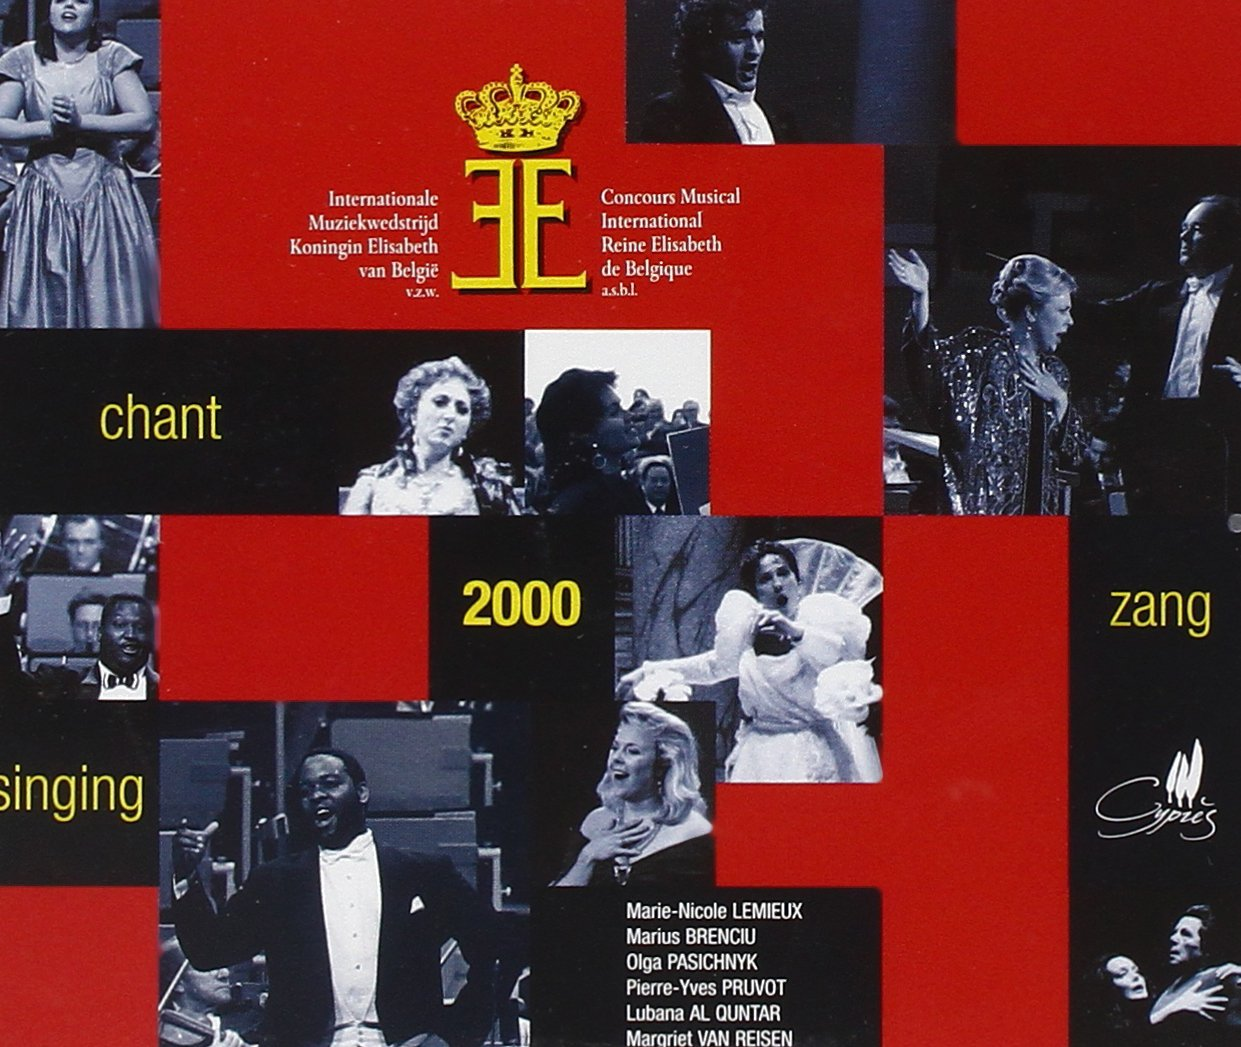 Queen Elizabeth Competition 2000: Singing by Cypres